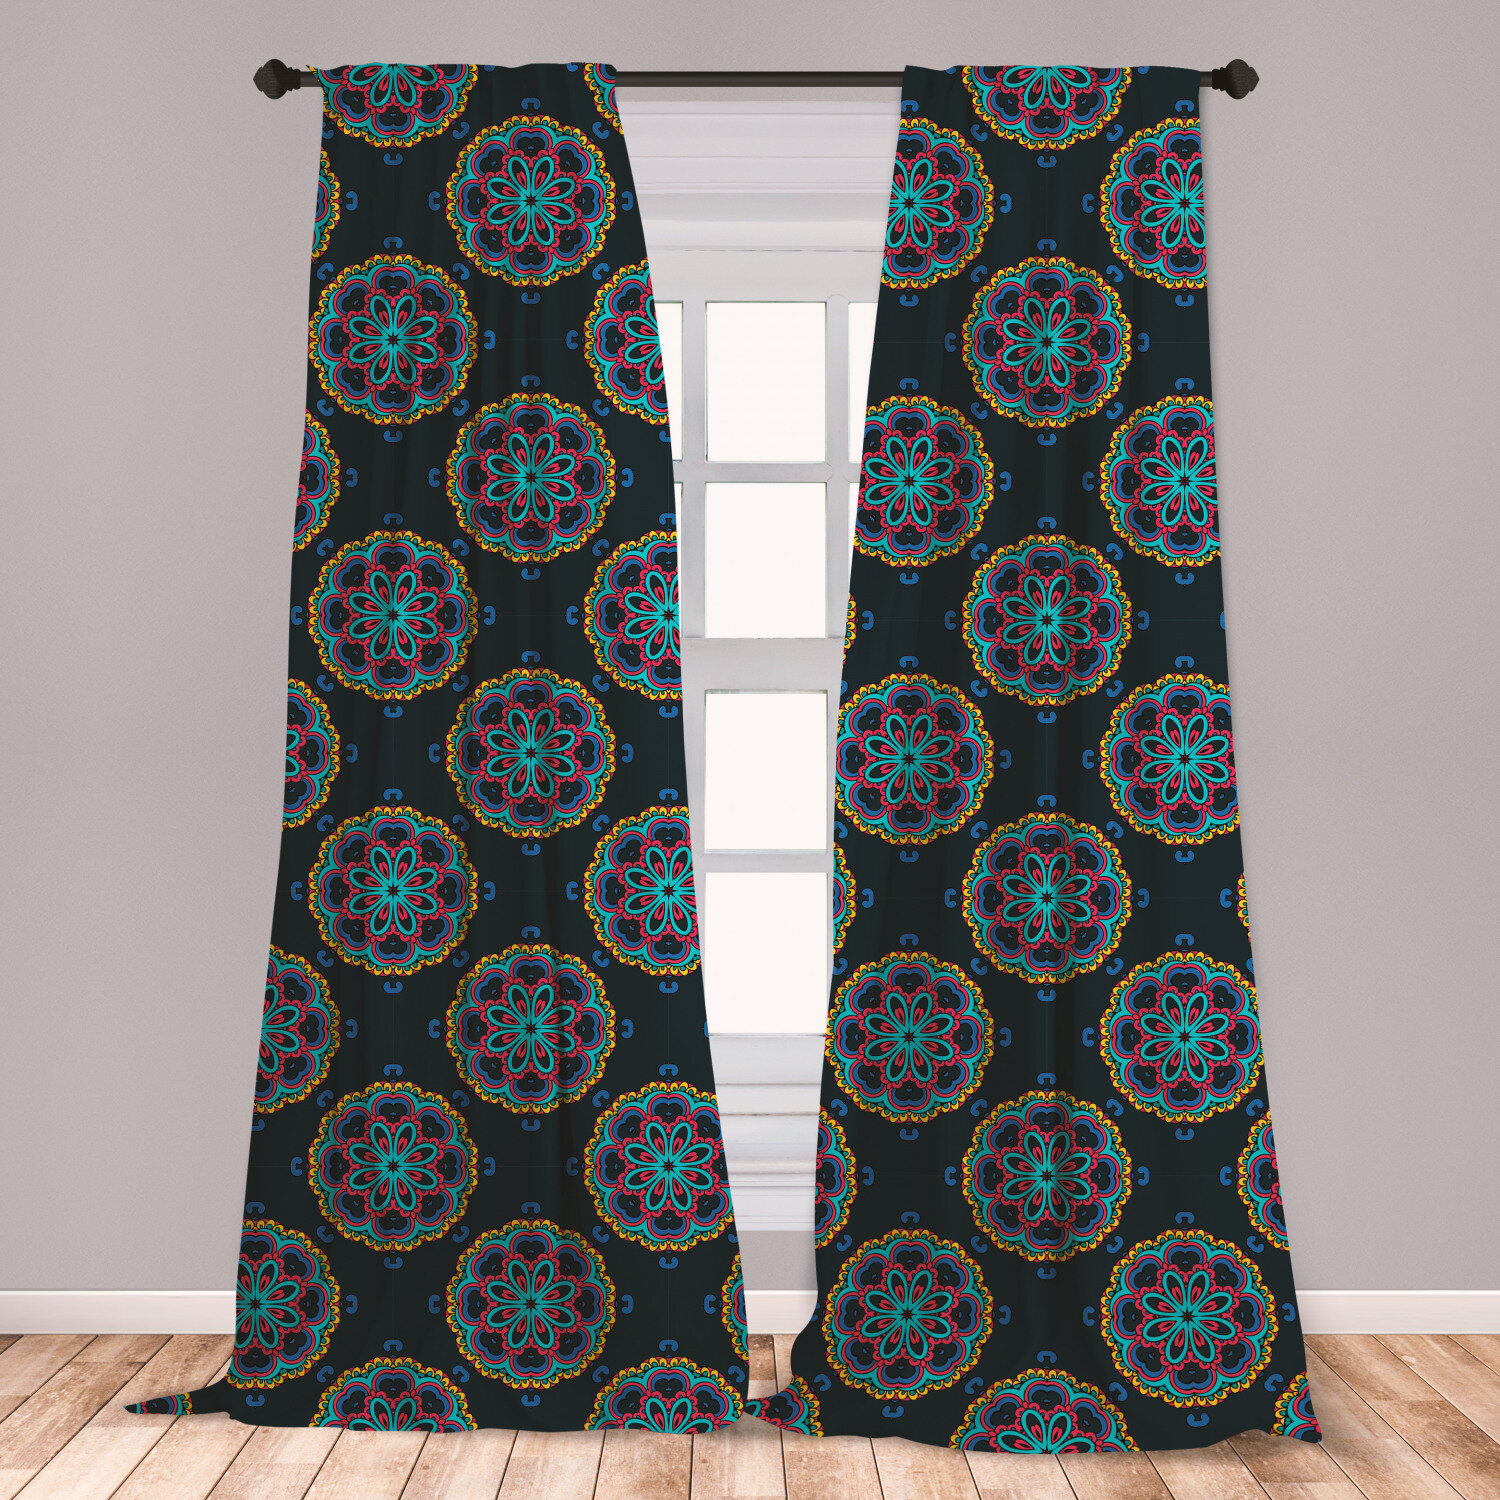 East Urban Home Ambesonne Colorful Curtains Composition With Doodle Foliage And Leaves Blooming Nature Theme Ethnic Window Treatments 2 Panel Set For Living Room Bedroom Decor 56 X 63 Multicolor Wayfair